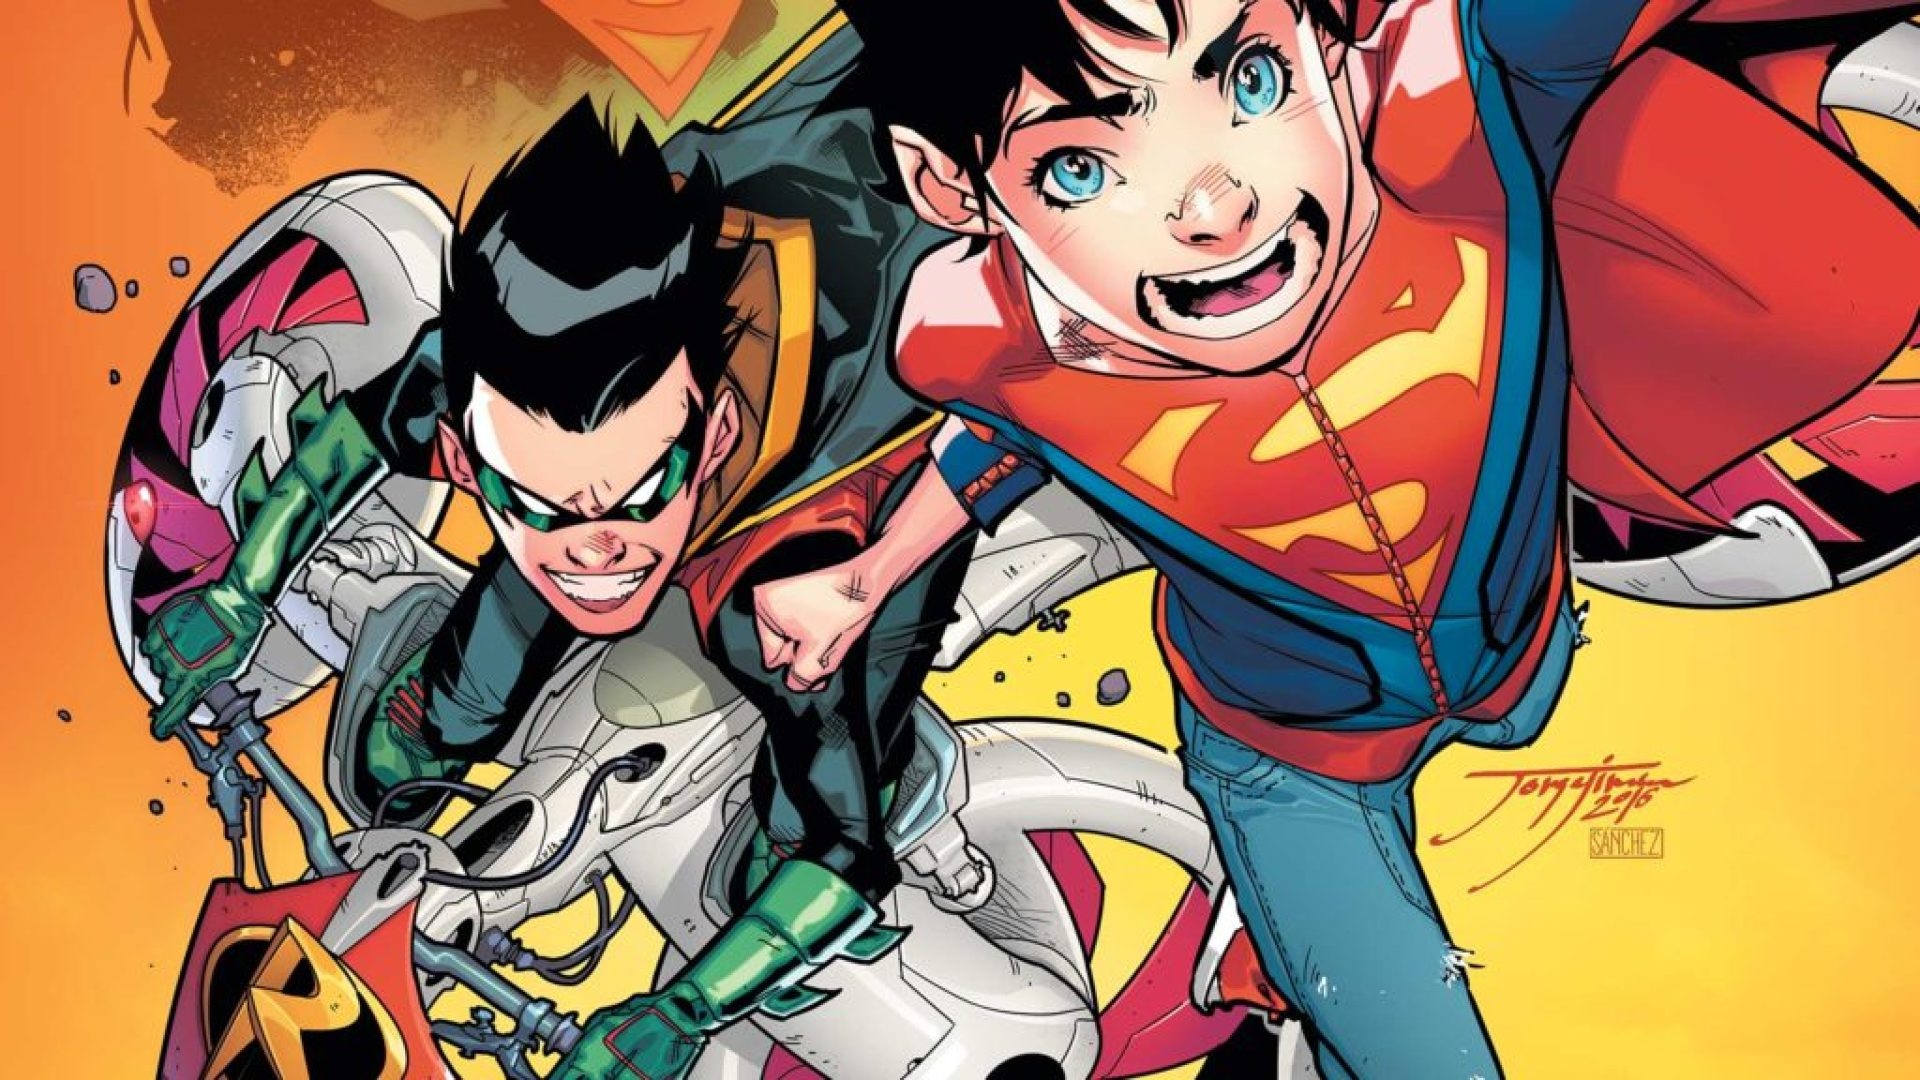 Jon and Damian the Super Sons of DC Comics